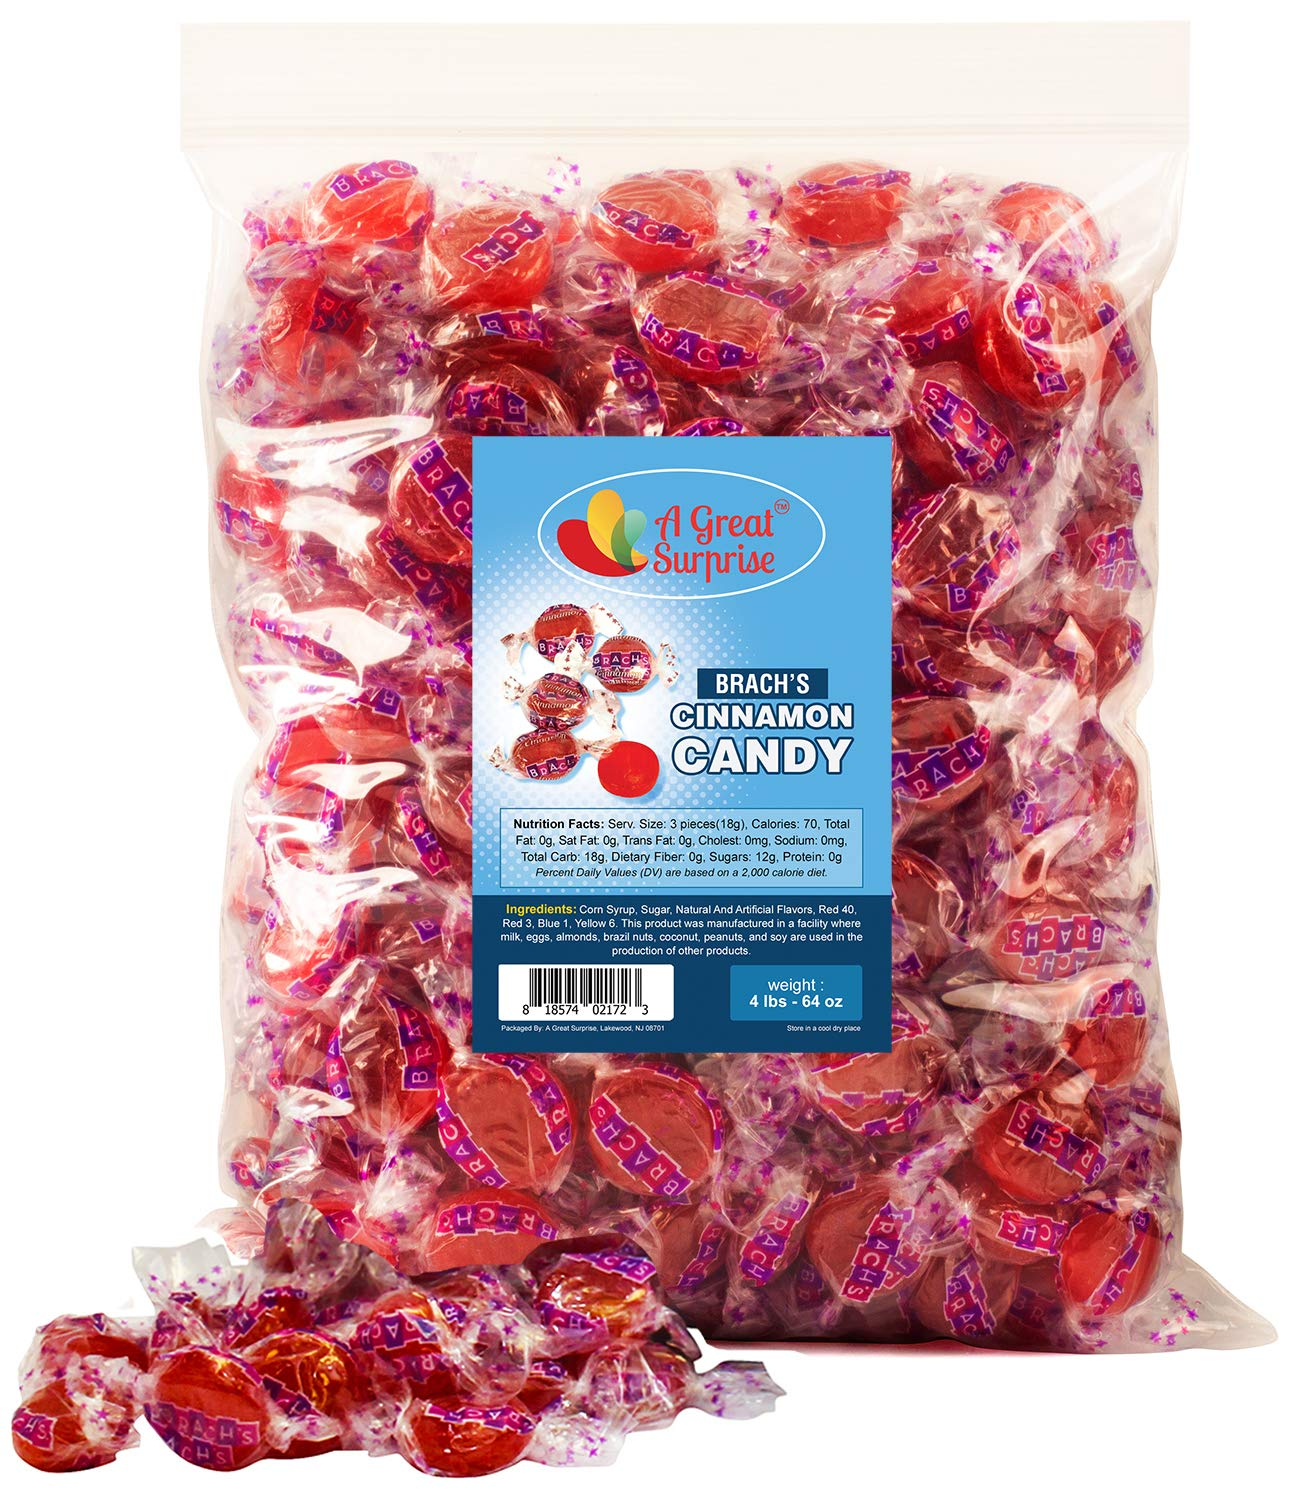 Cinnamon Hard Candy Individually Wrapped - Cinnamon Discs - Red Candy - Bulk Candy 4 LBS by A Great Surprise